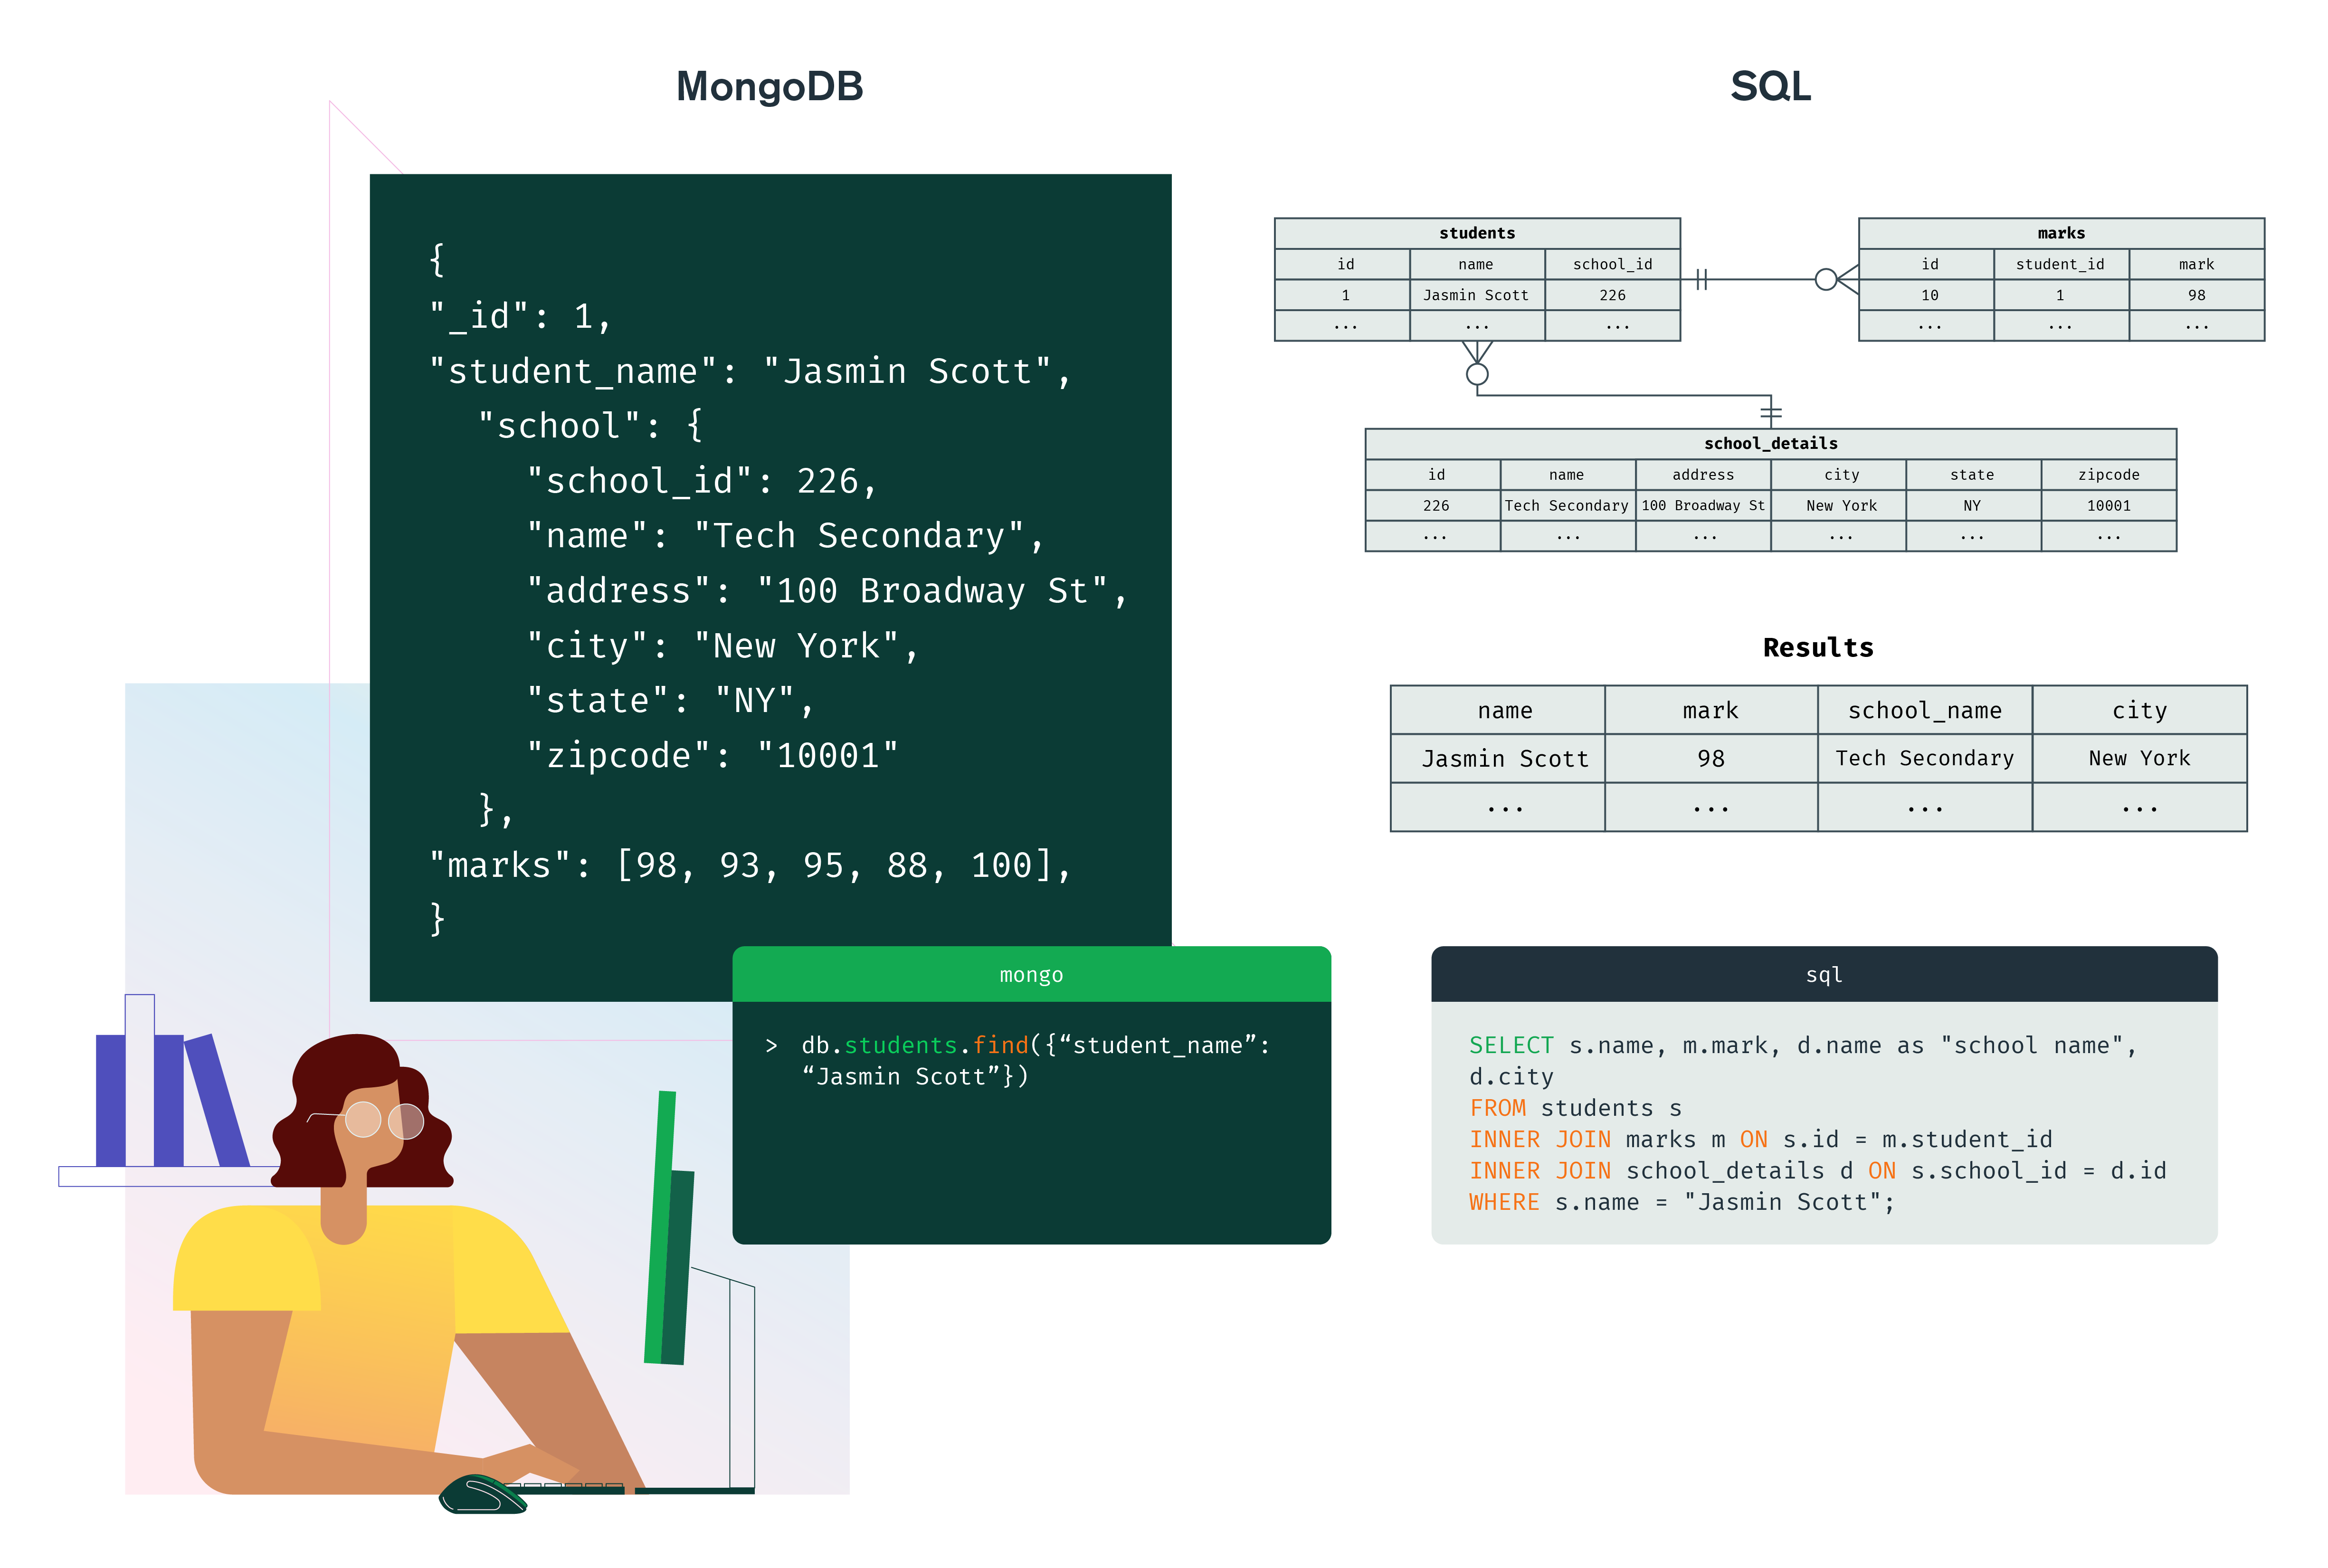 Diagram illustrating the differences between MongoDB and SQL